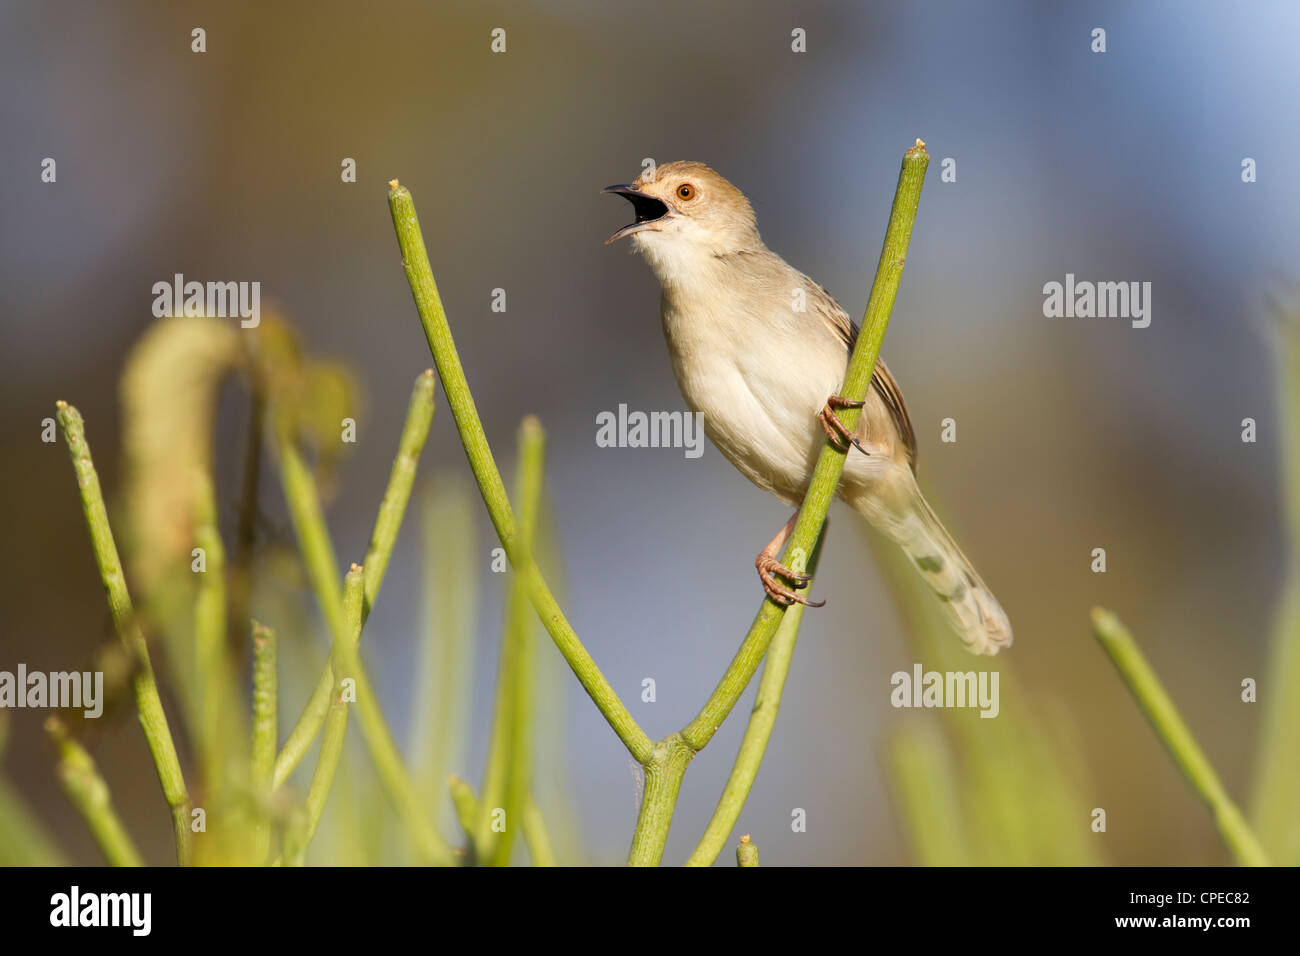 Rattling Cisticola Cisticola chiniana singing from vegetation in graveyard, Negele, Ethiopia in March. - Stock Image